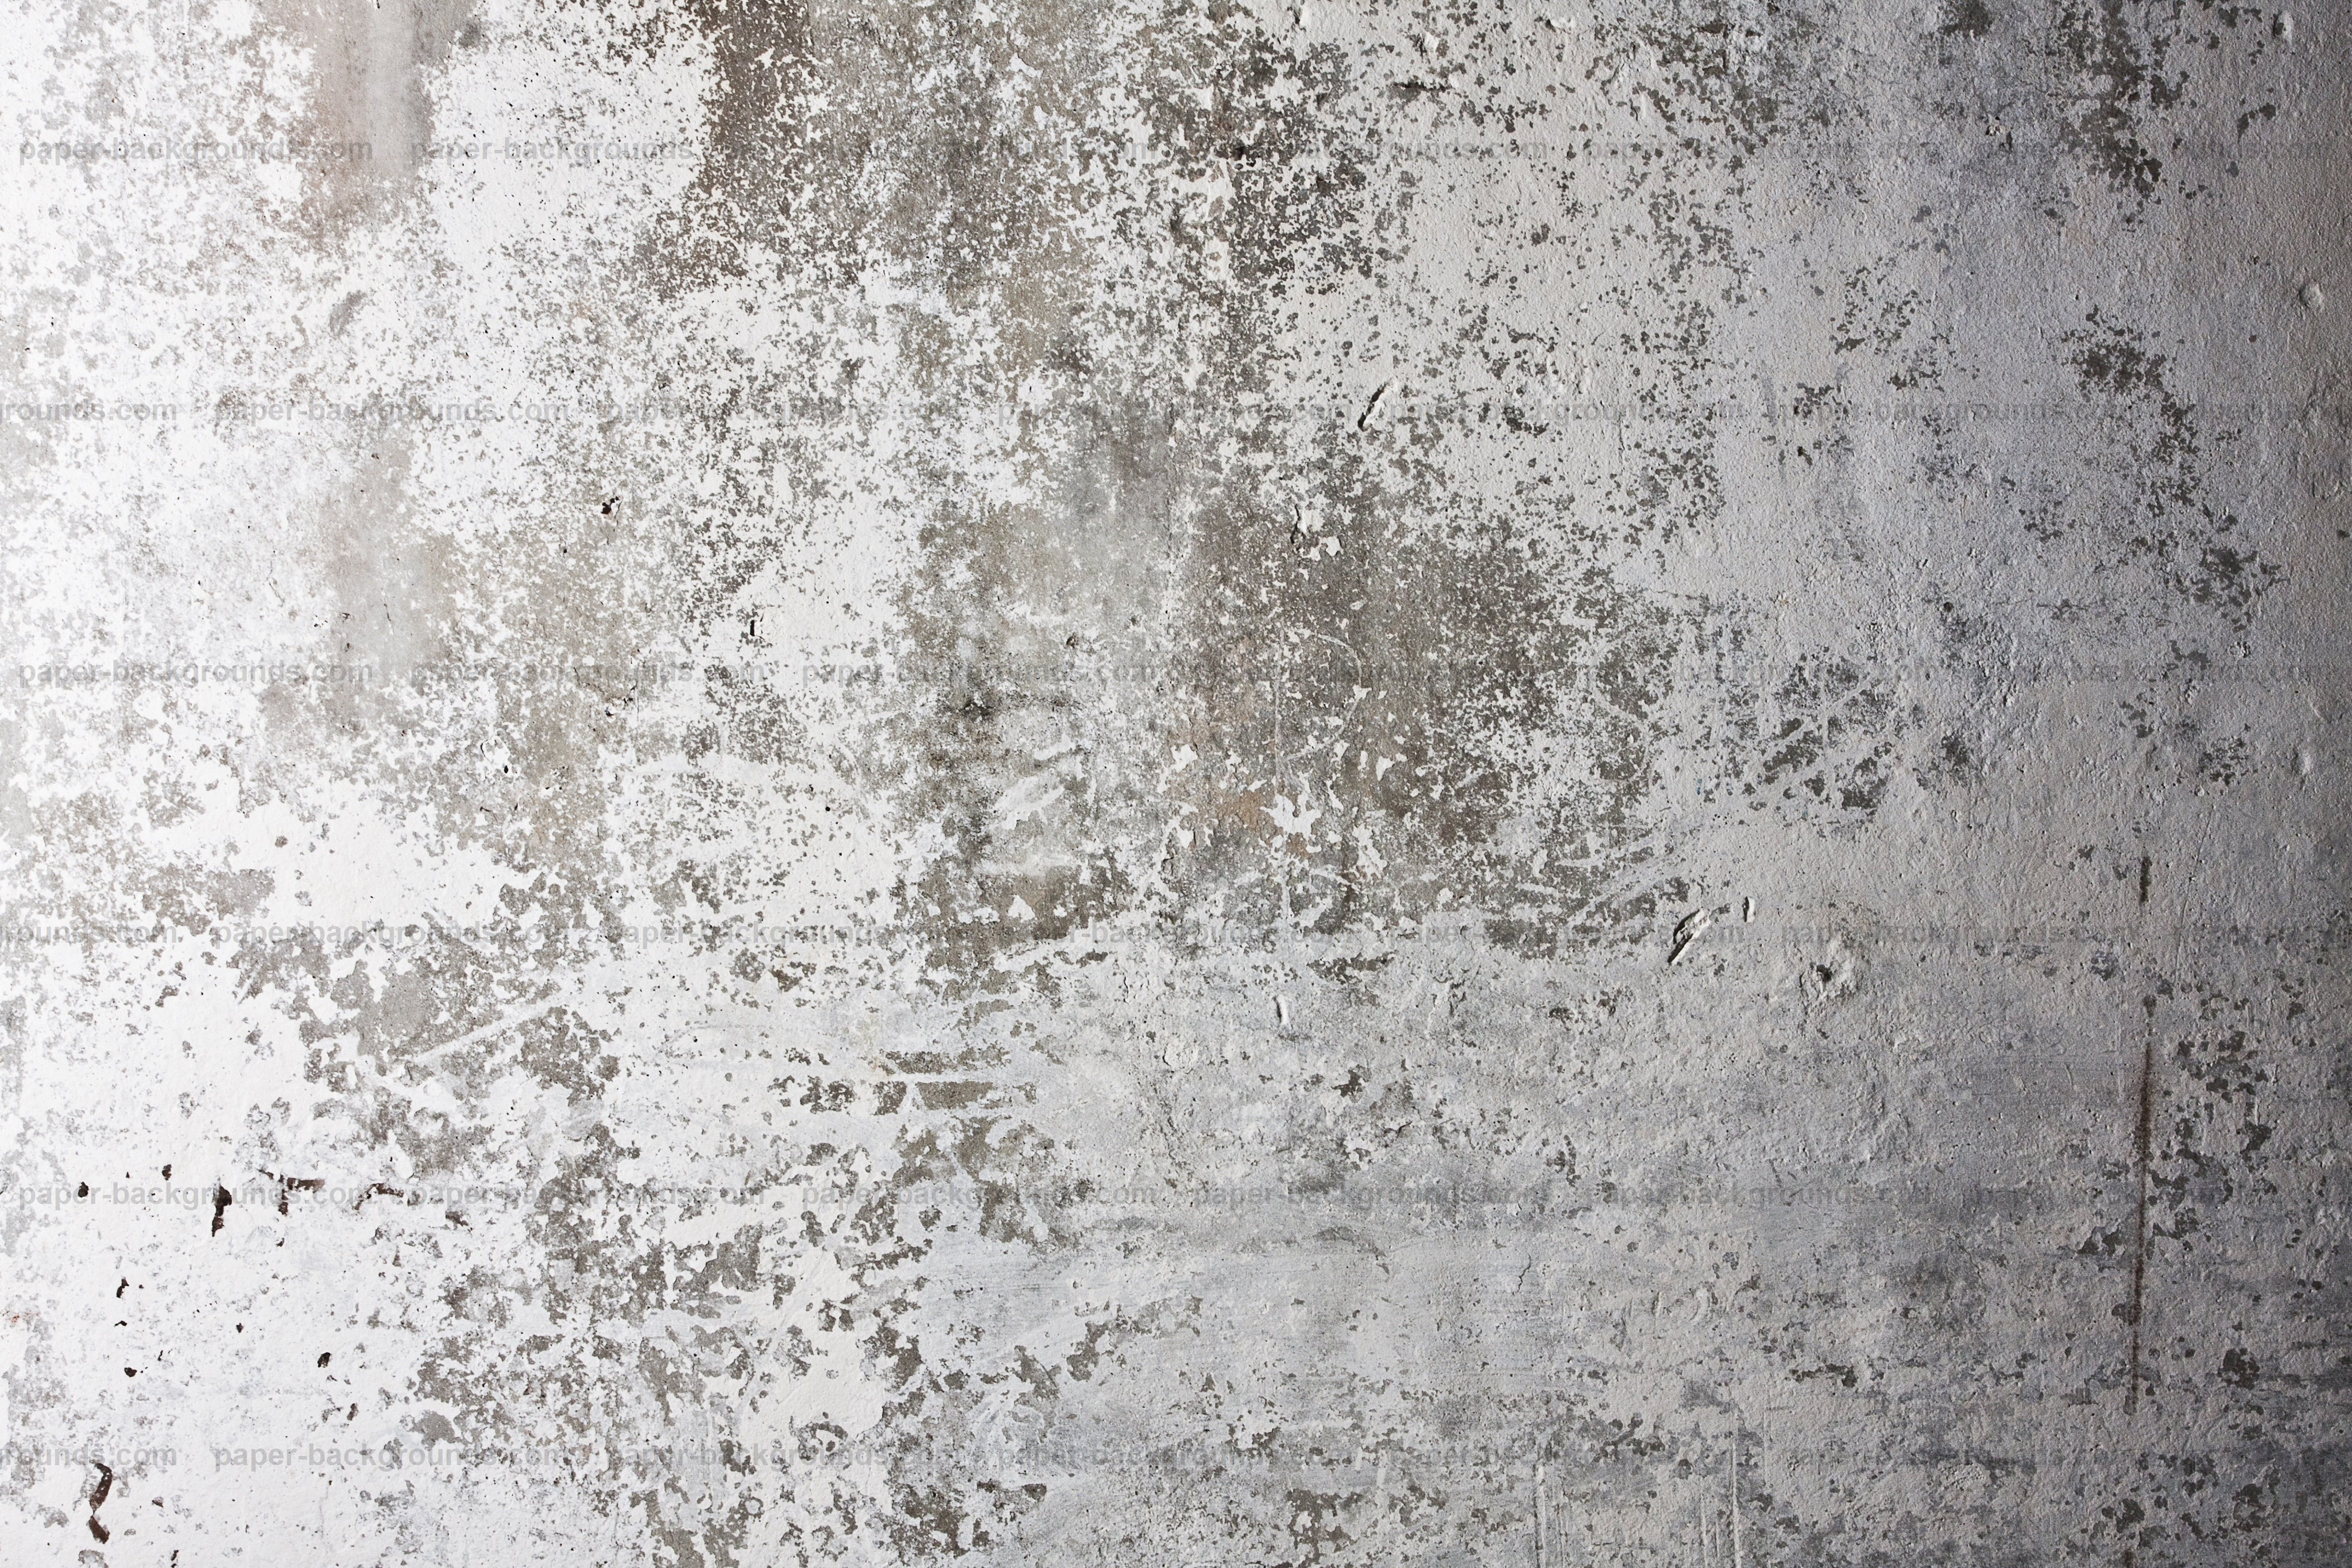 white grunge wall background Paper Backgrounds 4096x2731